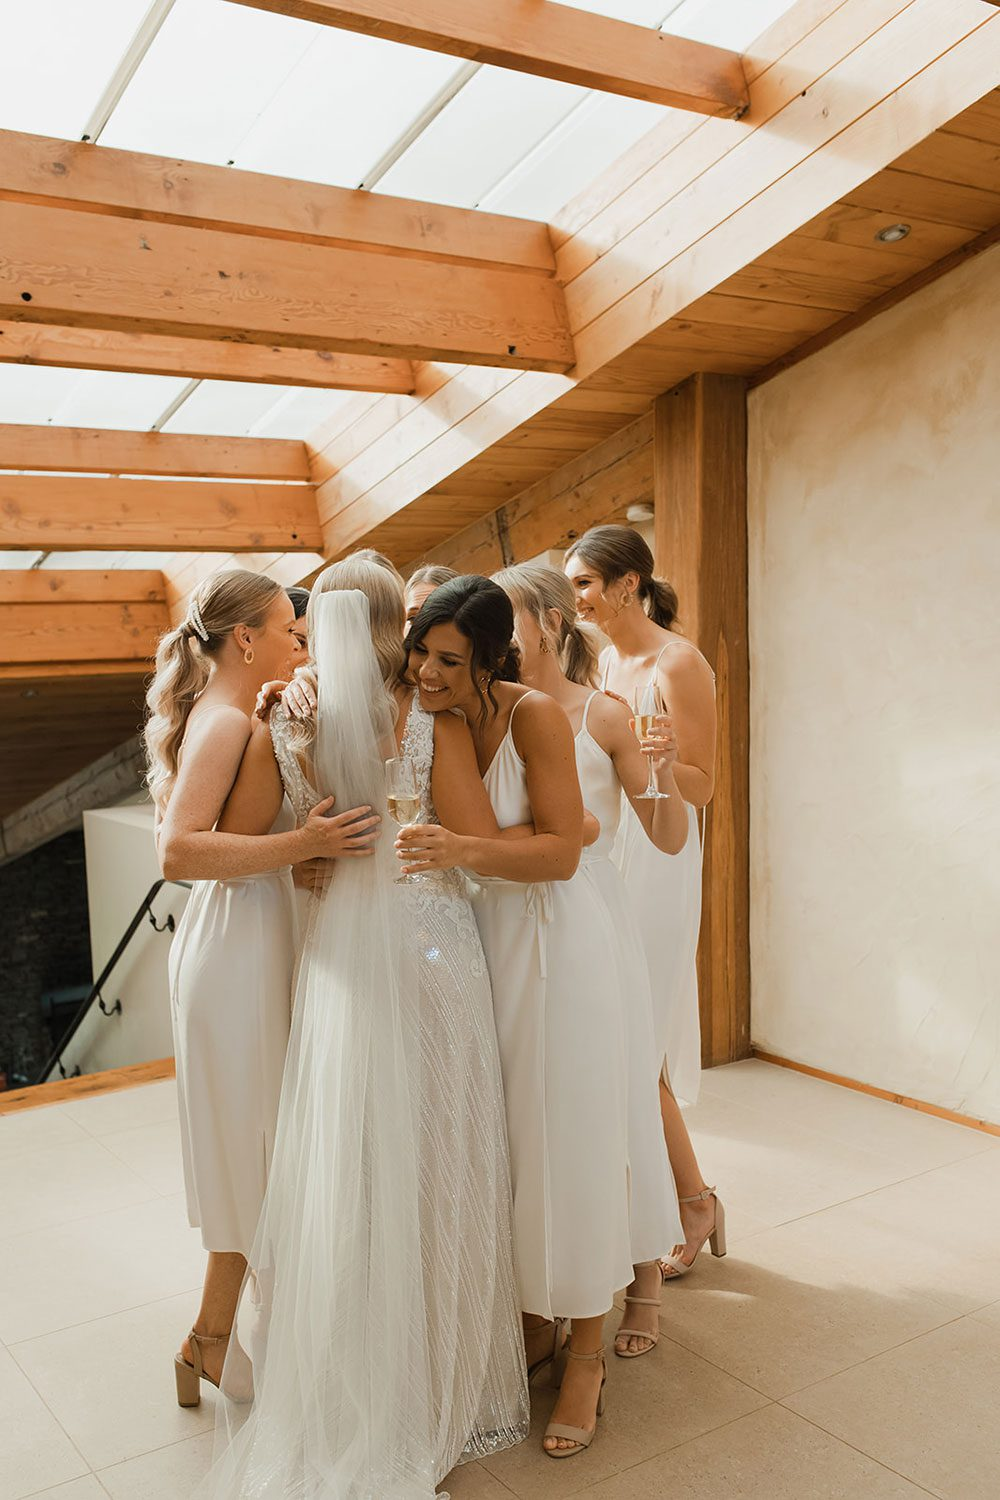 Bride wearing bespoke fitted V-neck gown in beaded lace with front split and sheer beaded overlay by Vinka bridal boutique NZ- hugging bridesmaids